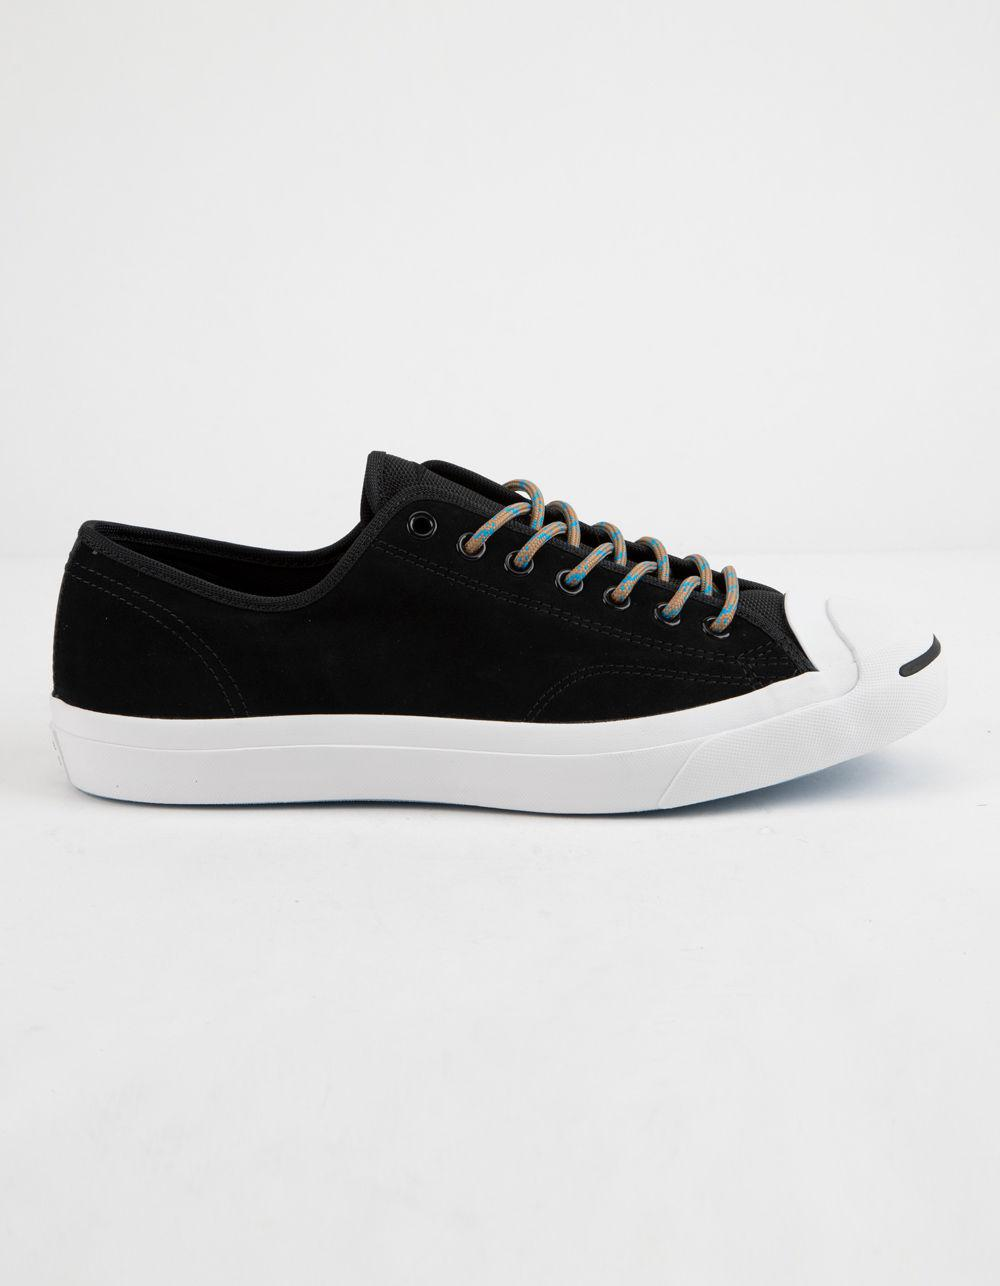 Lyst - Converse Jack Purcell Black Classic Low Top Shoes in Black 2ed3844d3